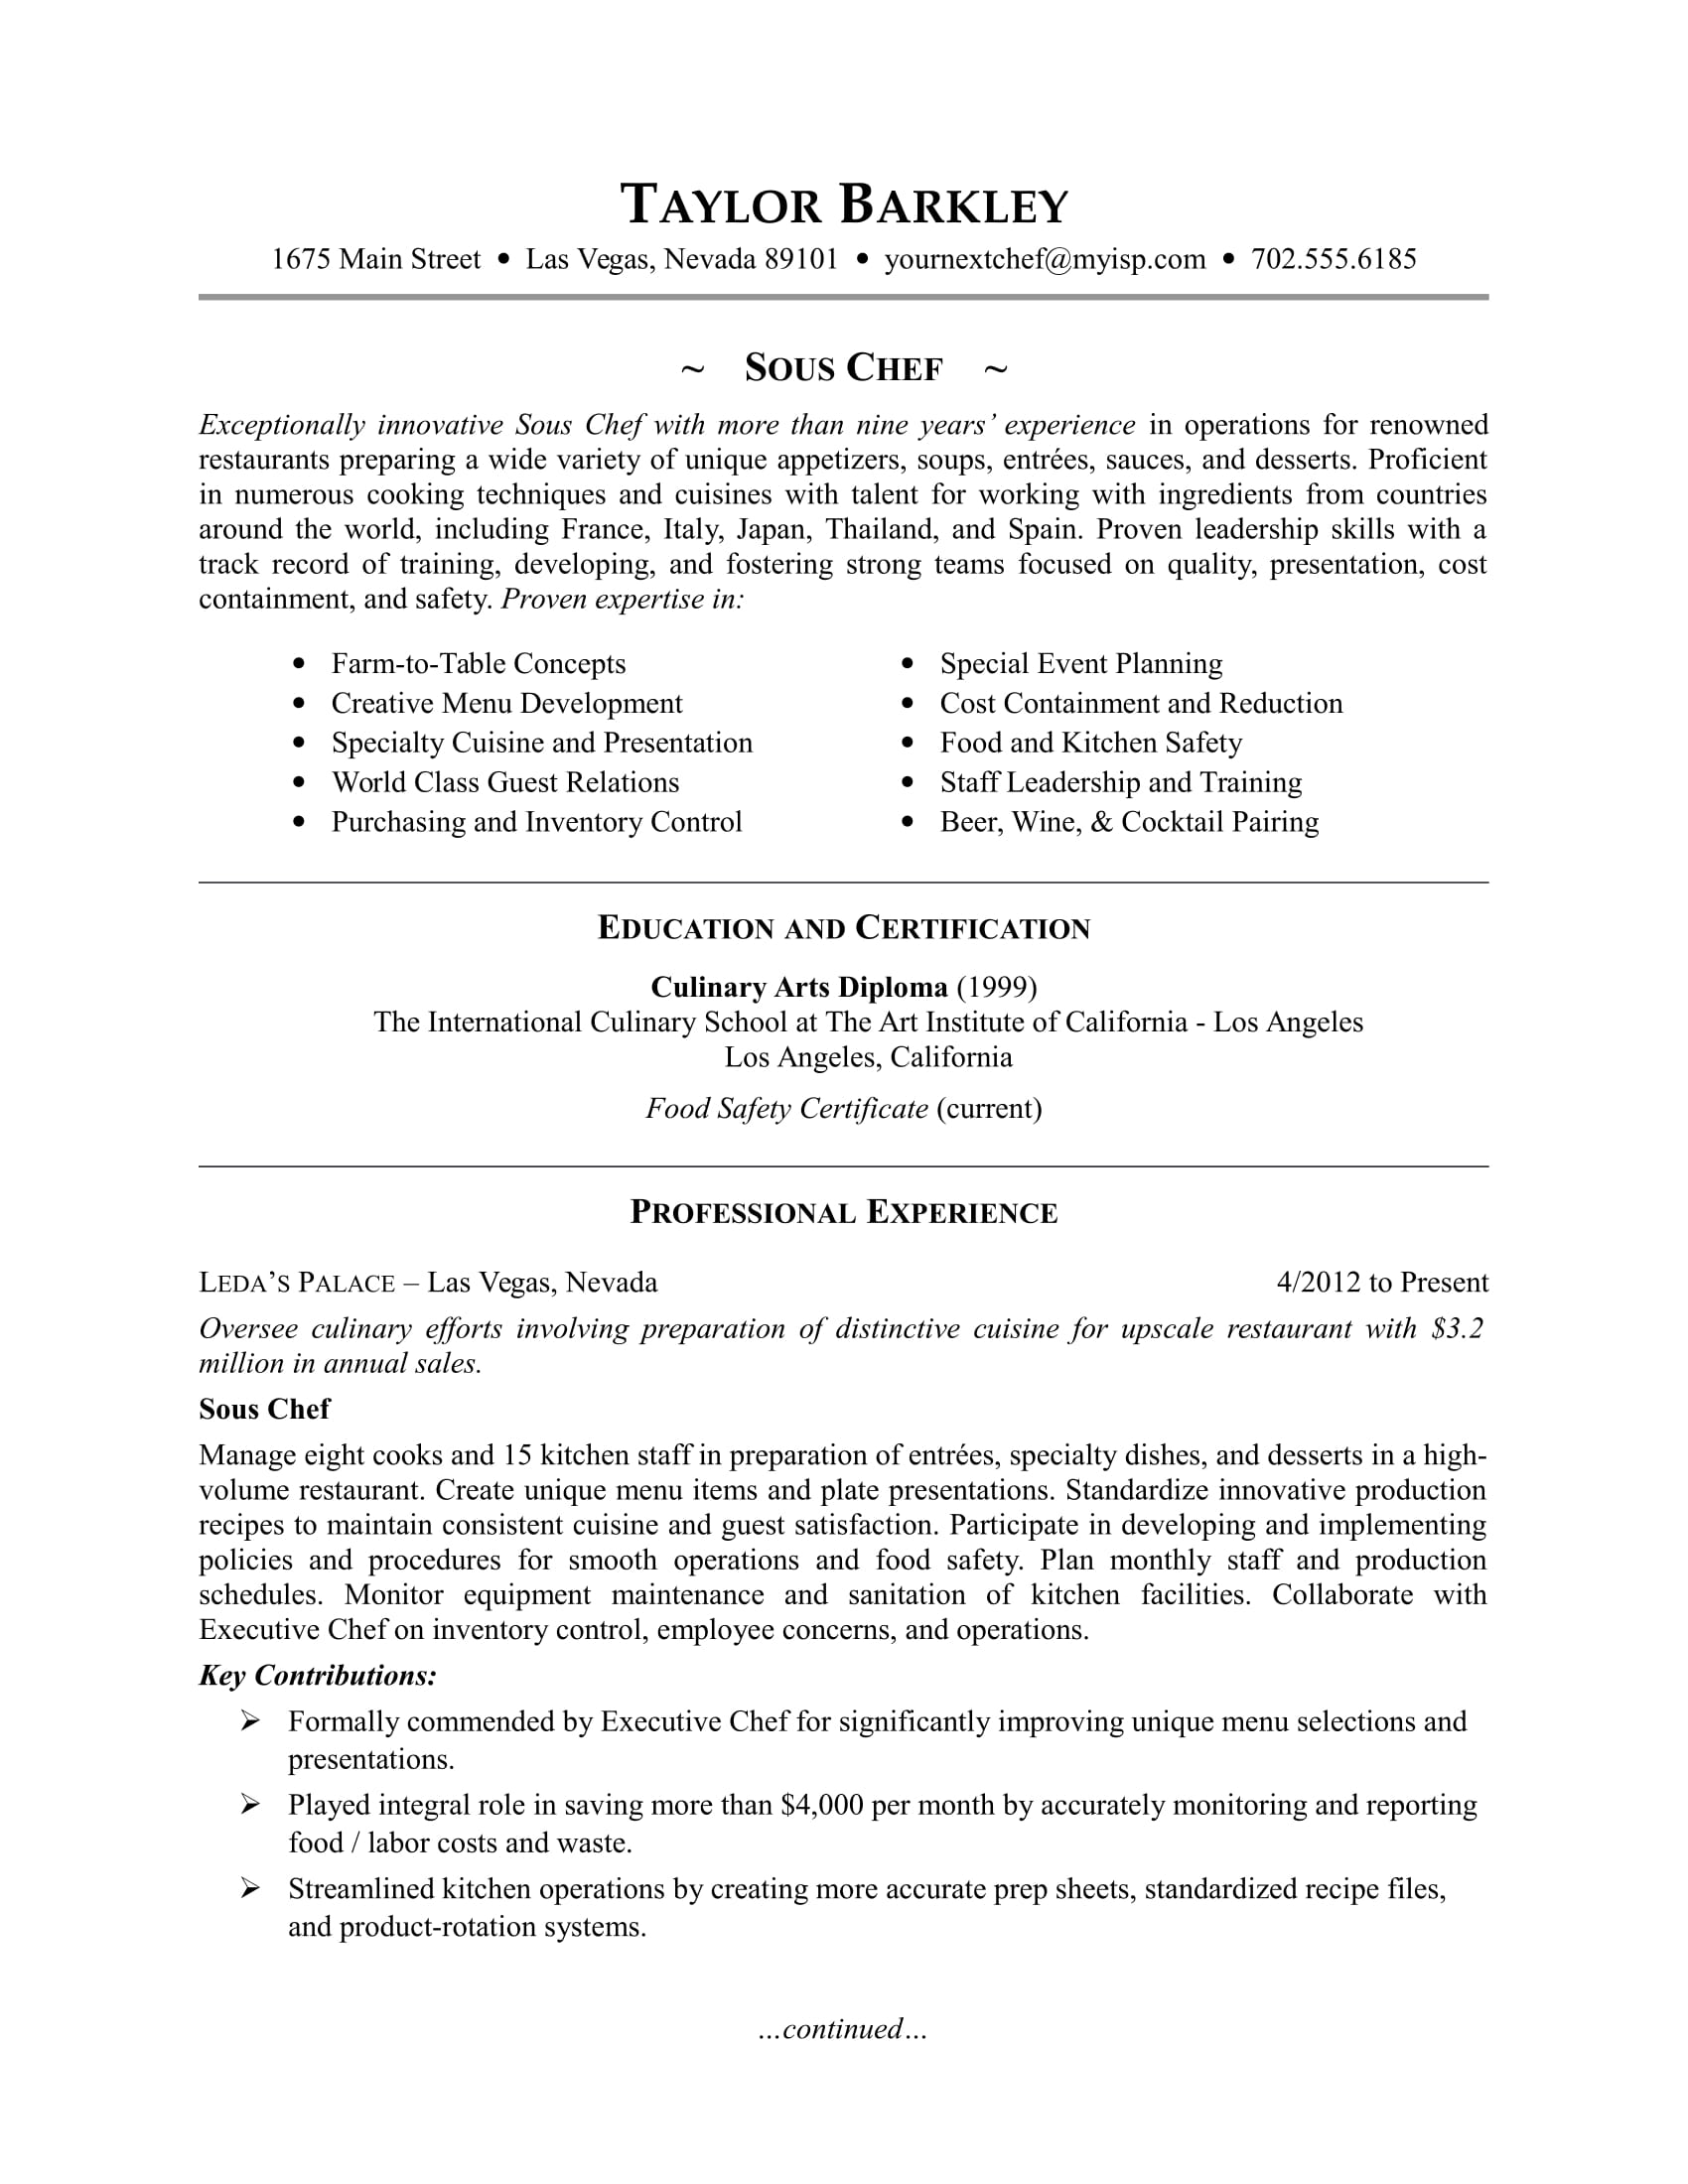 sample resume for a sous chef